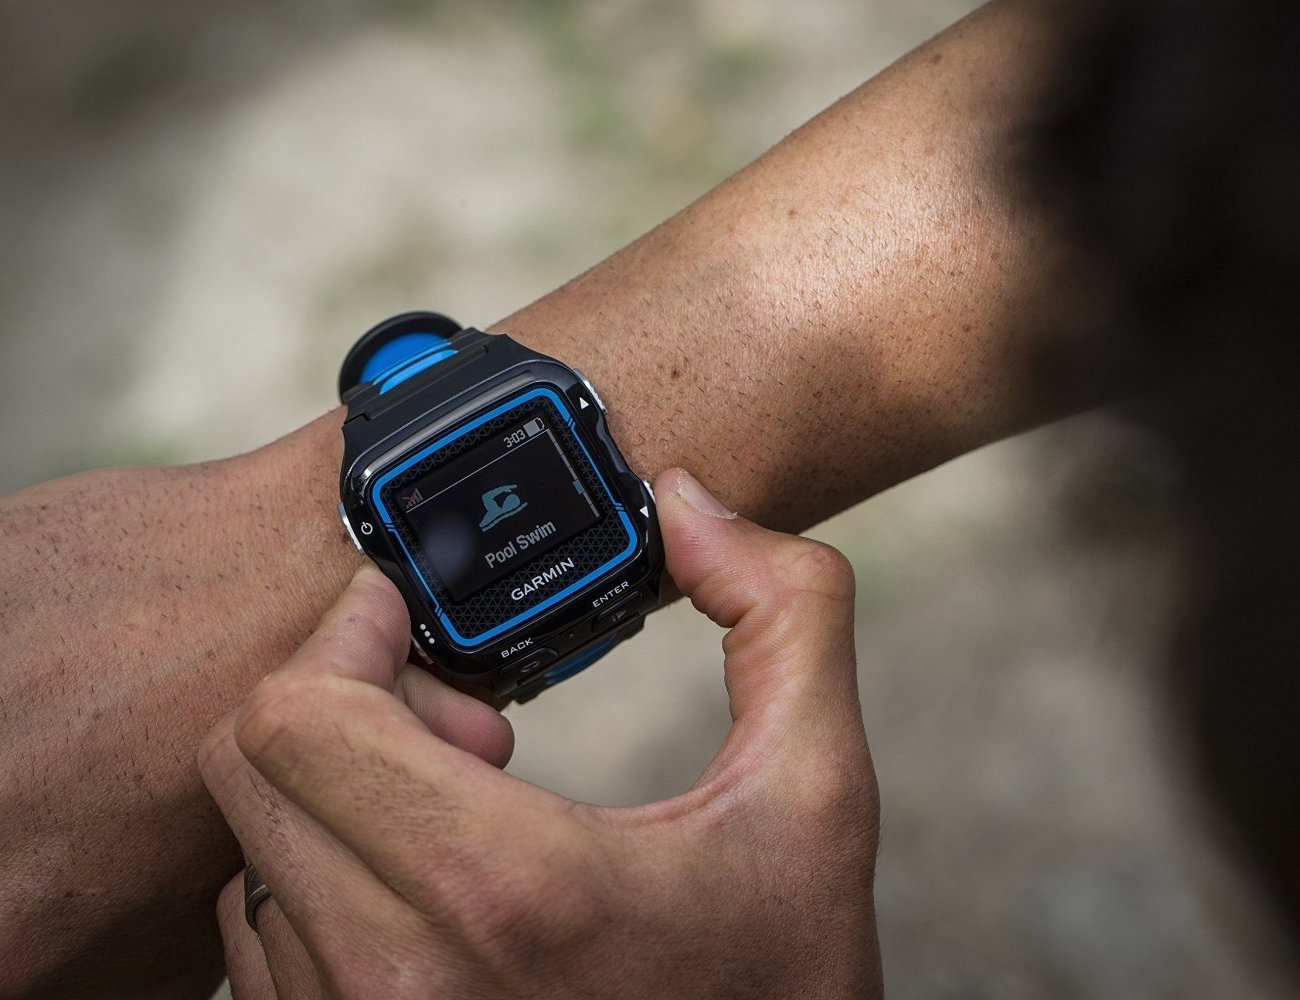 Garmin Forerunner 920XT GPS Fitness Watch